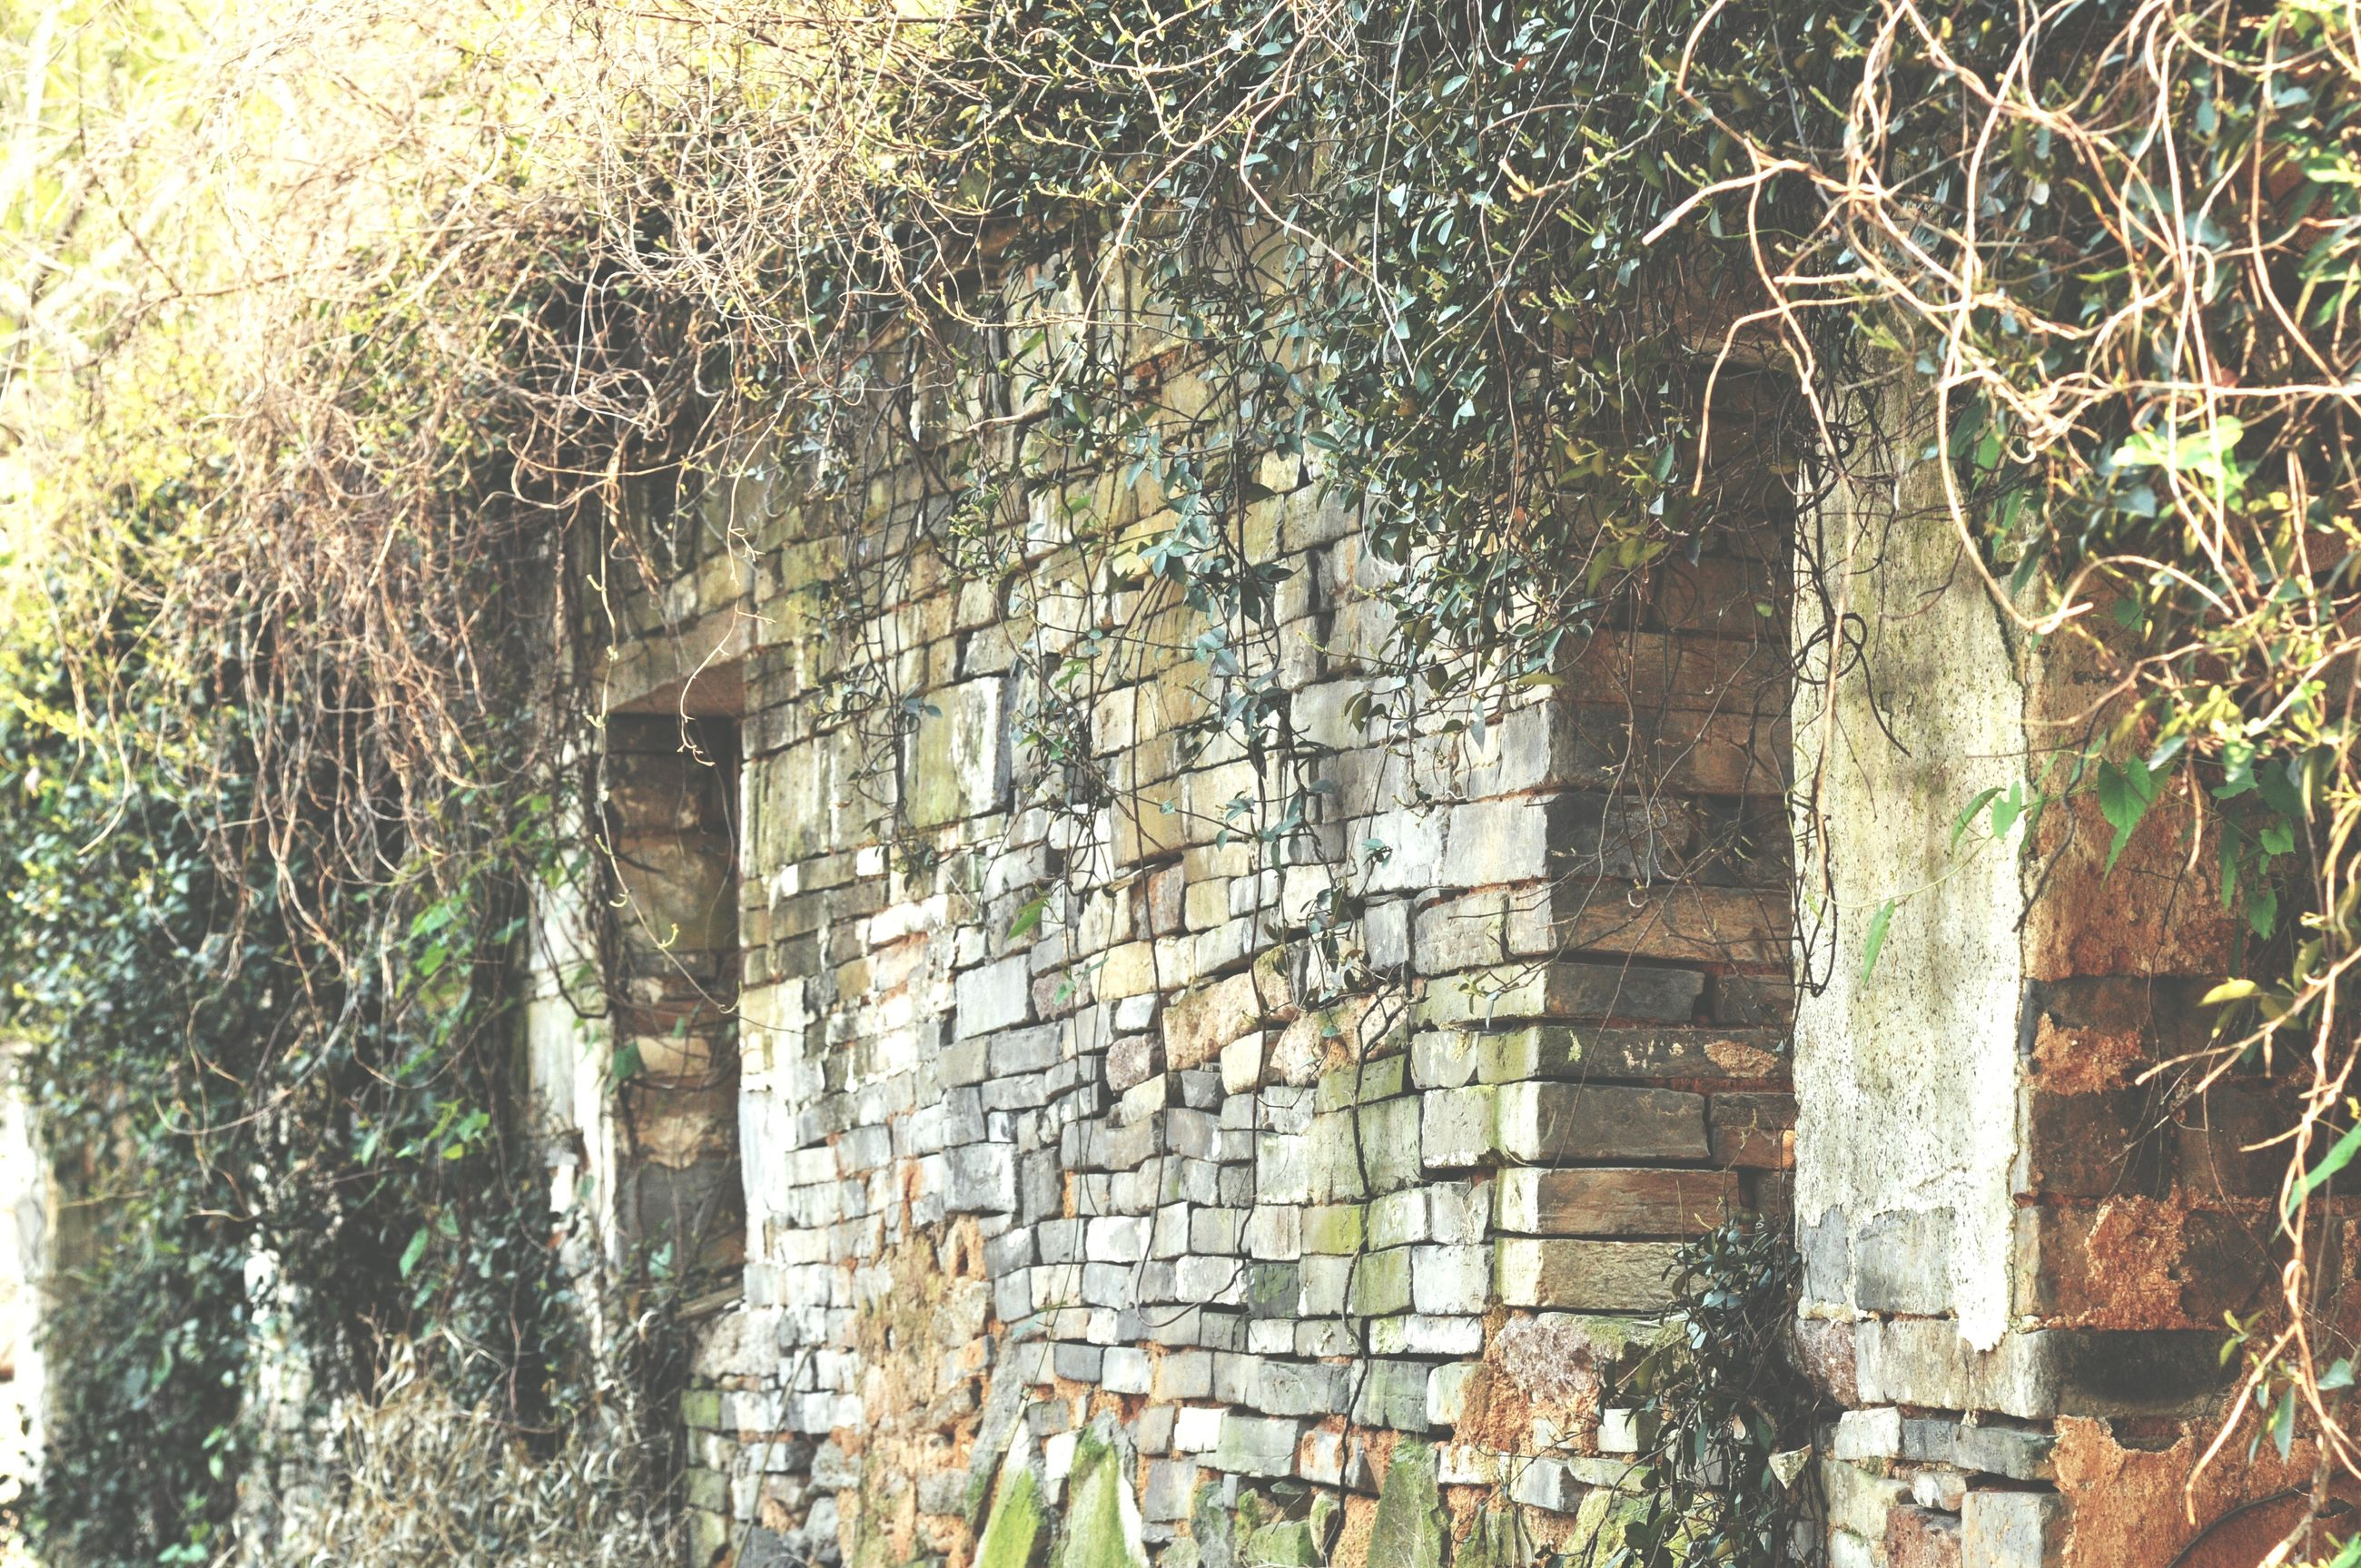 architecture, built structure, building exterior, wall - building feature, window, ivy, tree, brick wall, old, growth, house, full frame, wall, weathered, plant, day, backgrounds, no people, outdoors, building